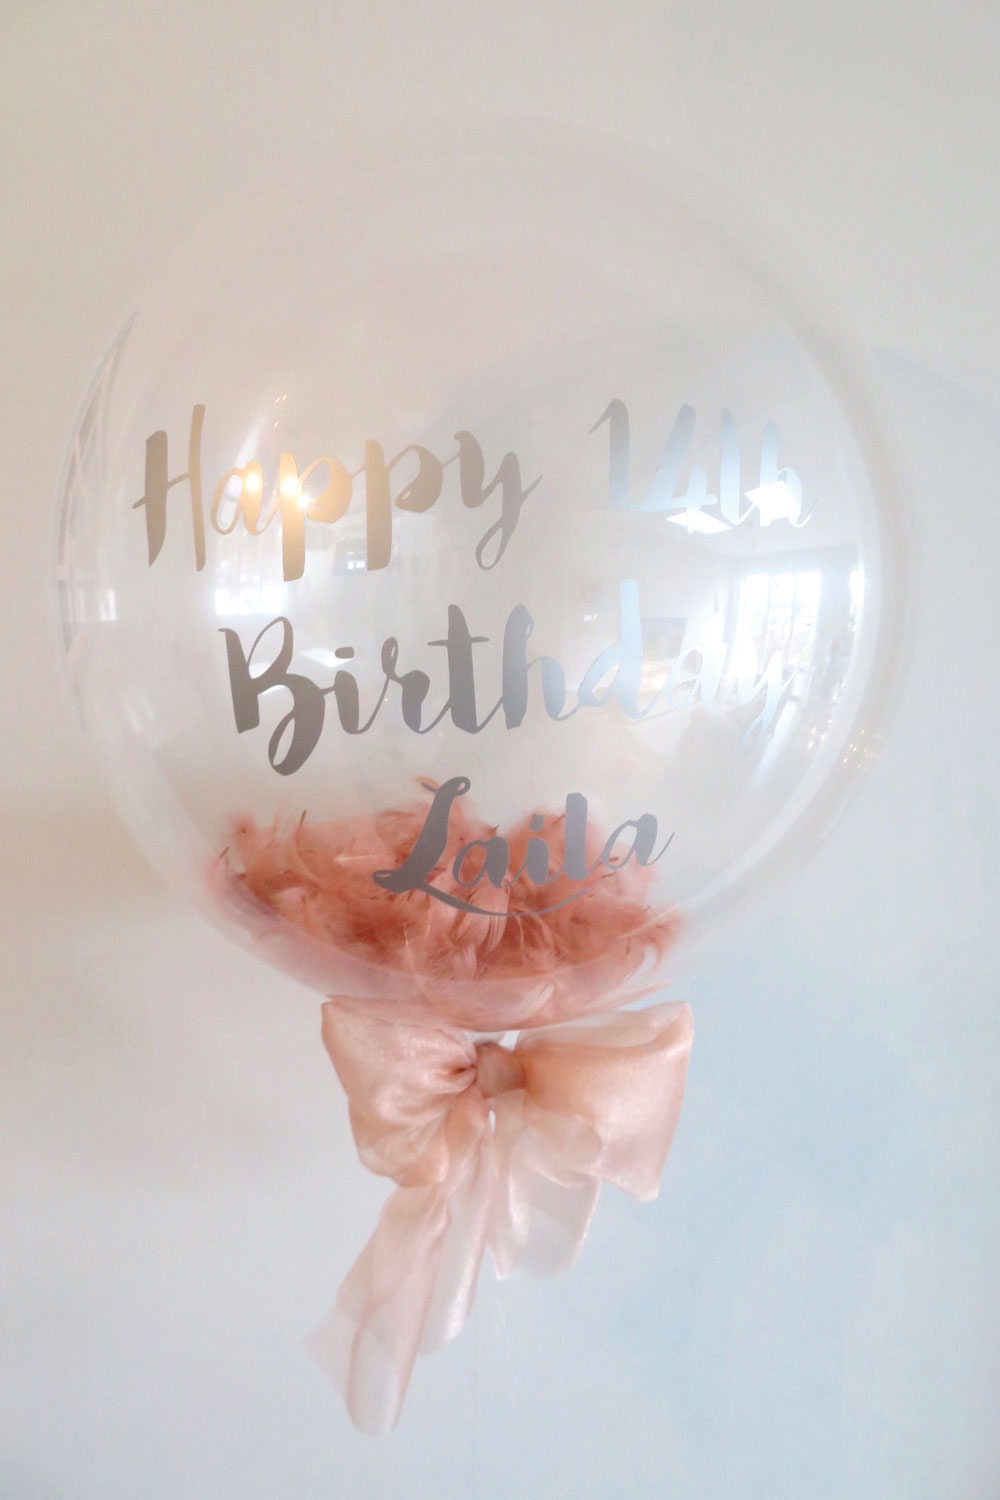 Wishful_events_Services_balloons_1000x1500.jpg